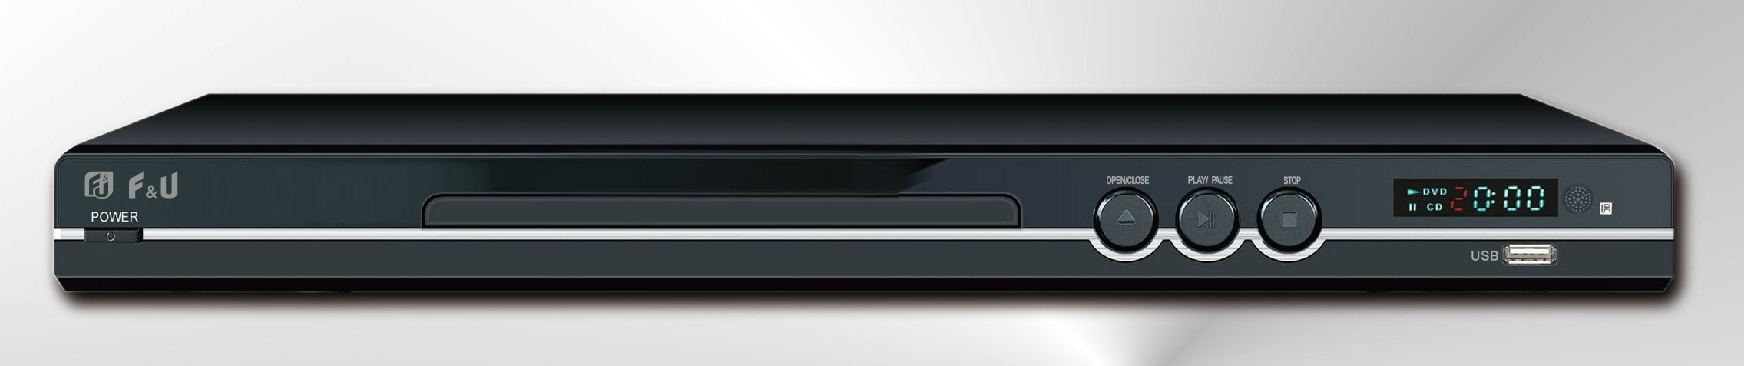 DVD PLAYER 5.1 ΜΕ USB F&U DVD3696